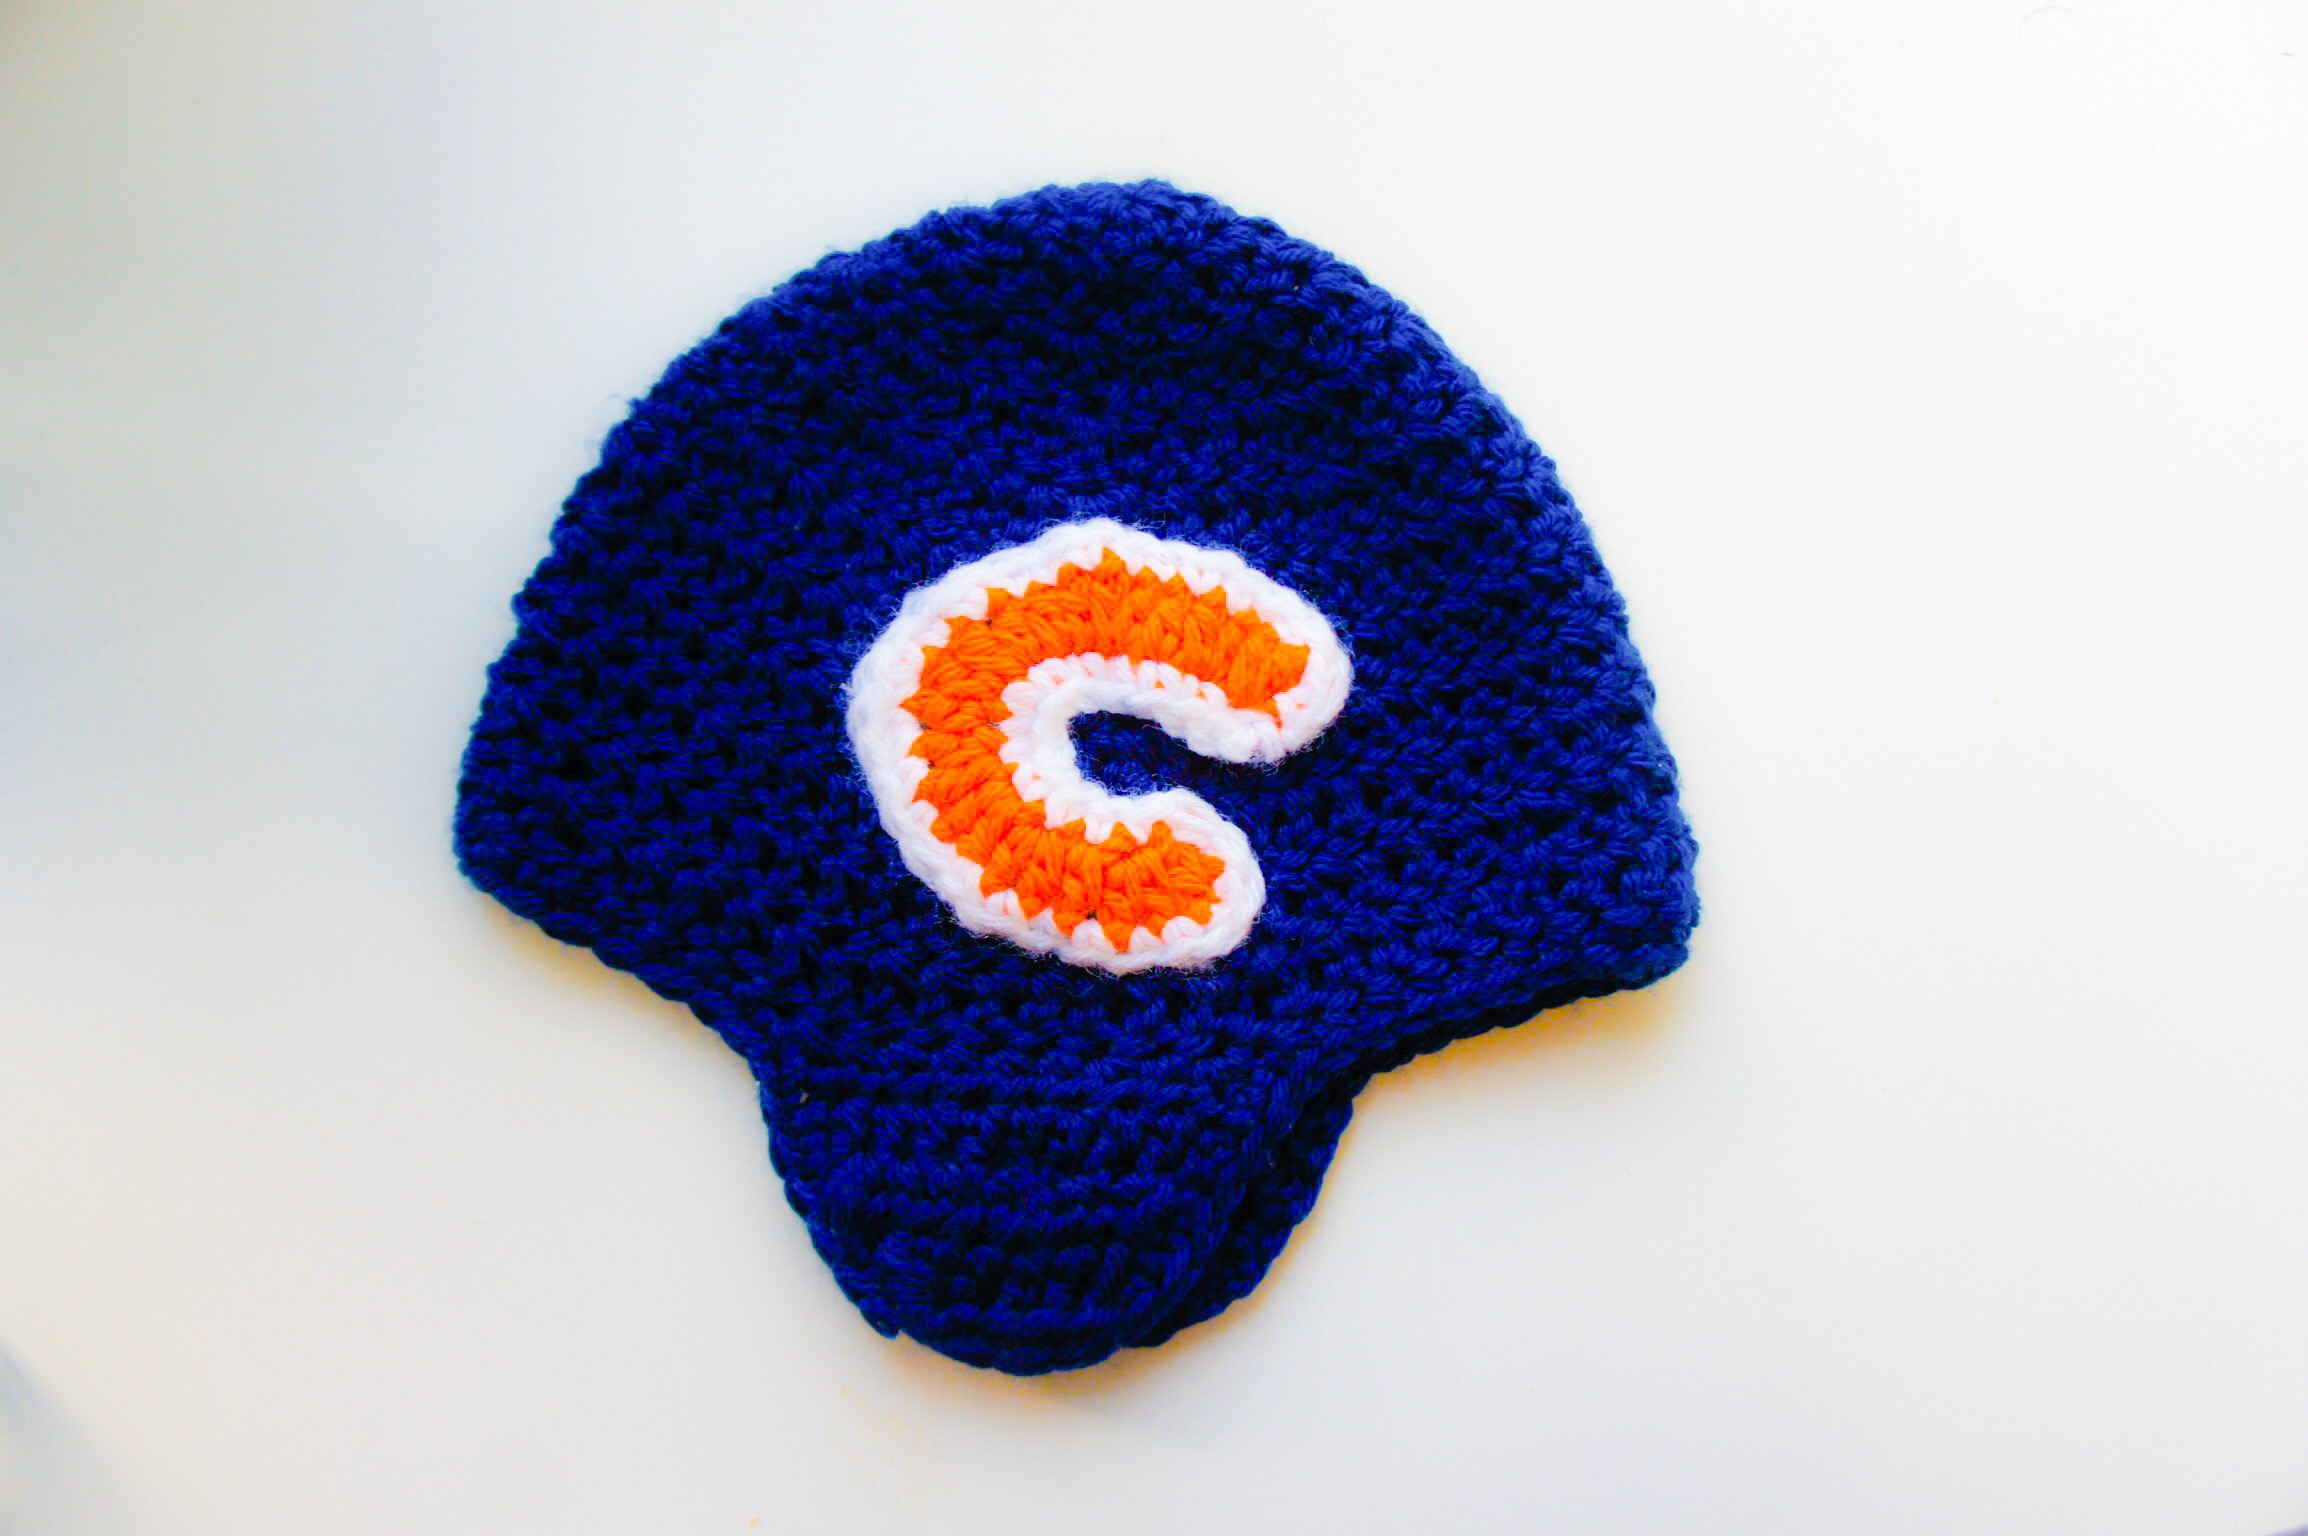 Beautiful Crochet Football Bearded Helmet – Chicago Bears – Mama Crochet Football Helmets Of Lovely 48 Pics Crochet Football Helmets